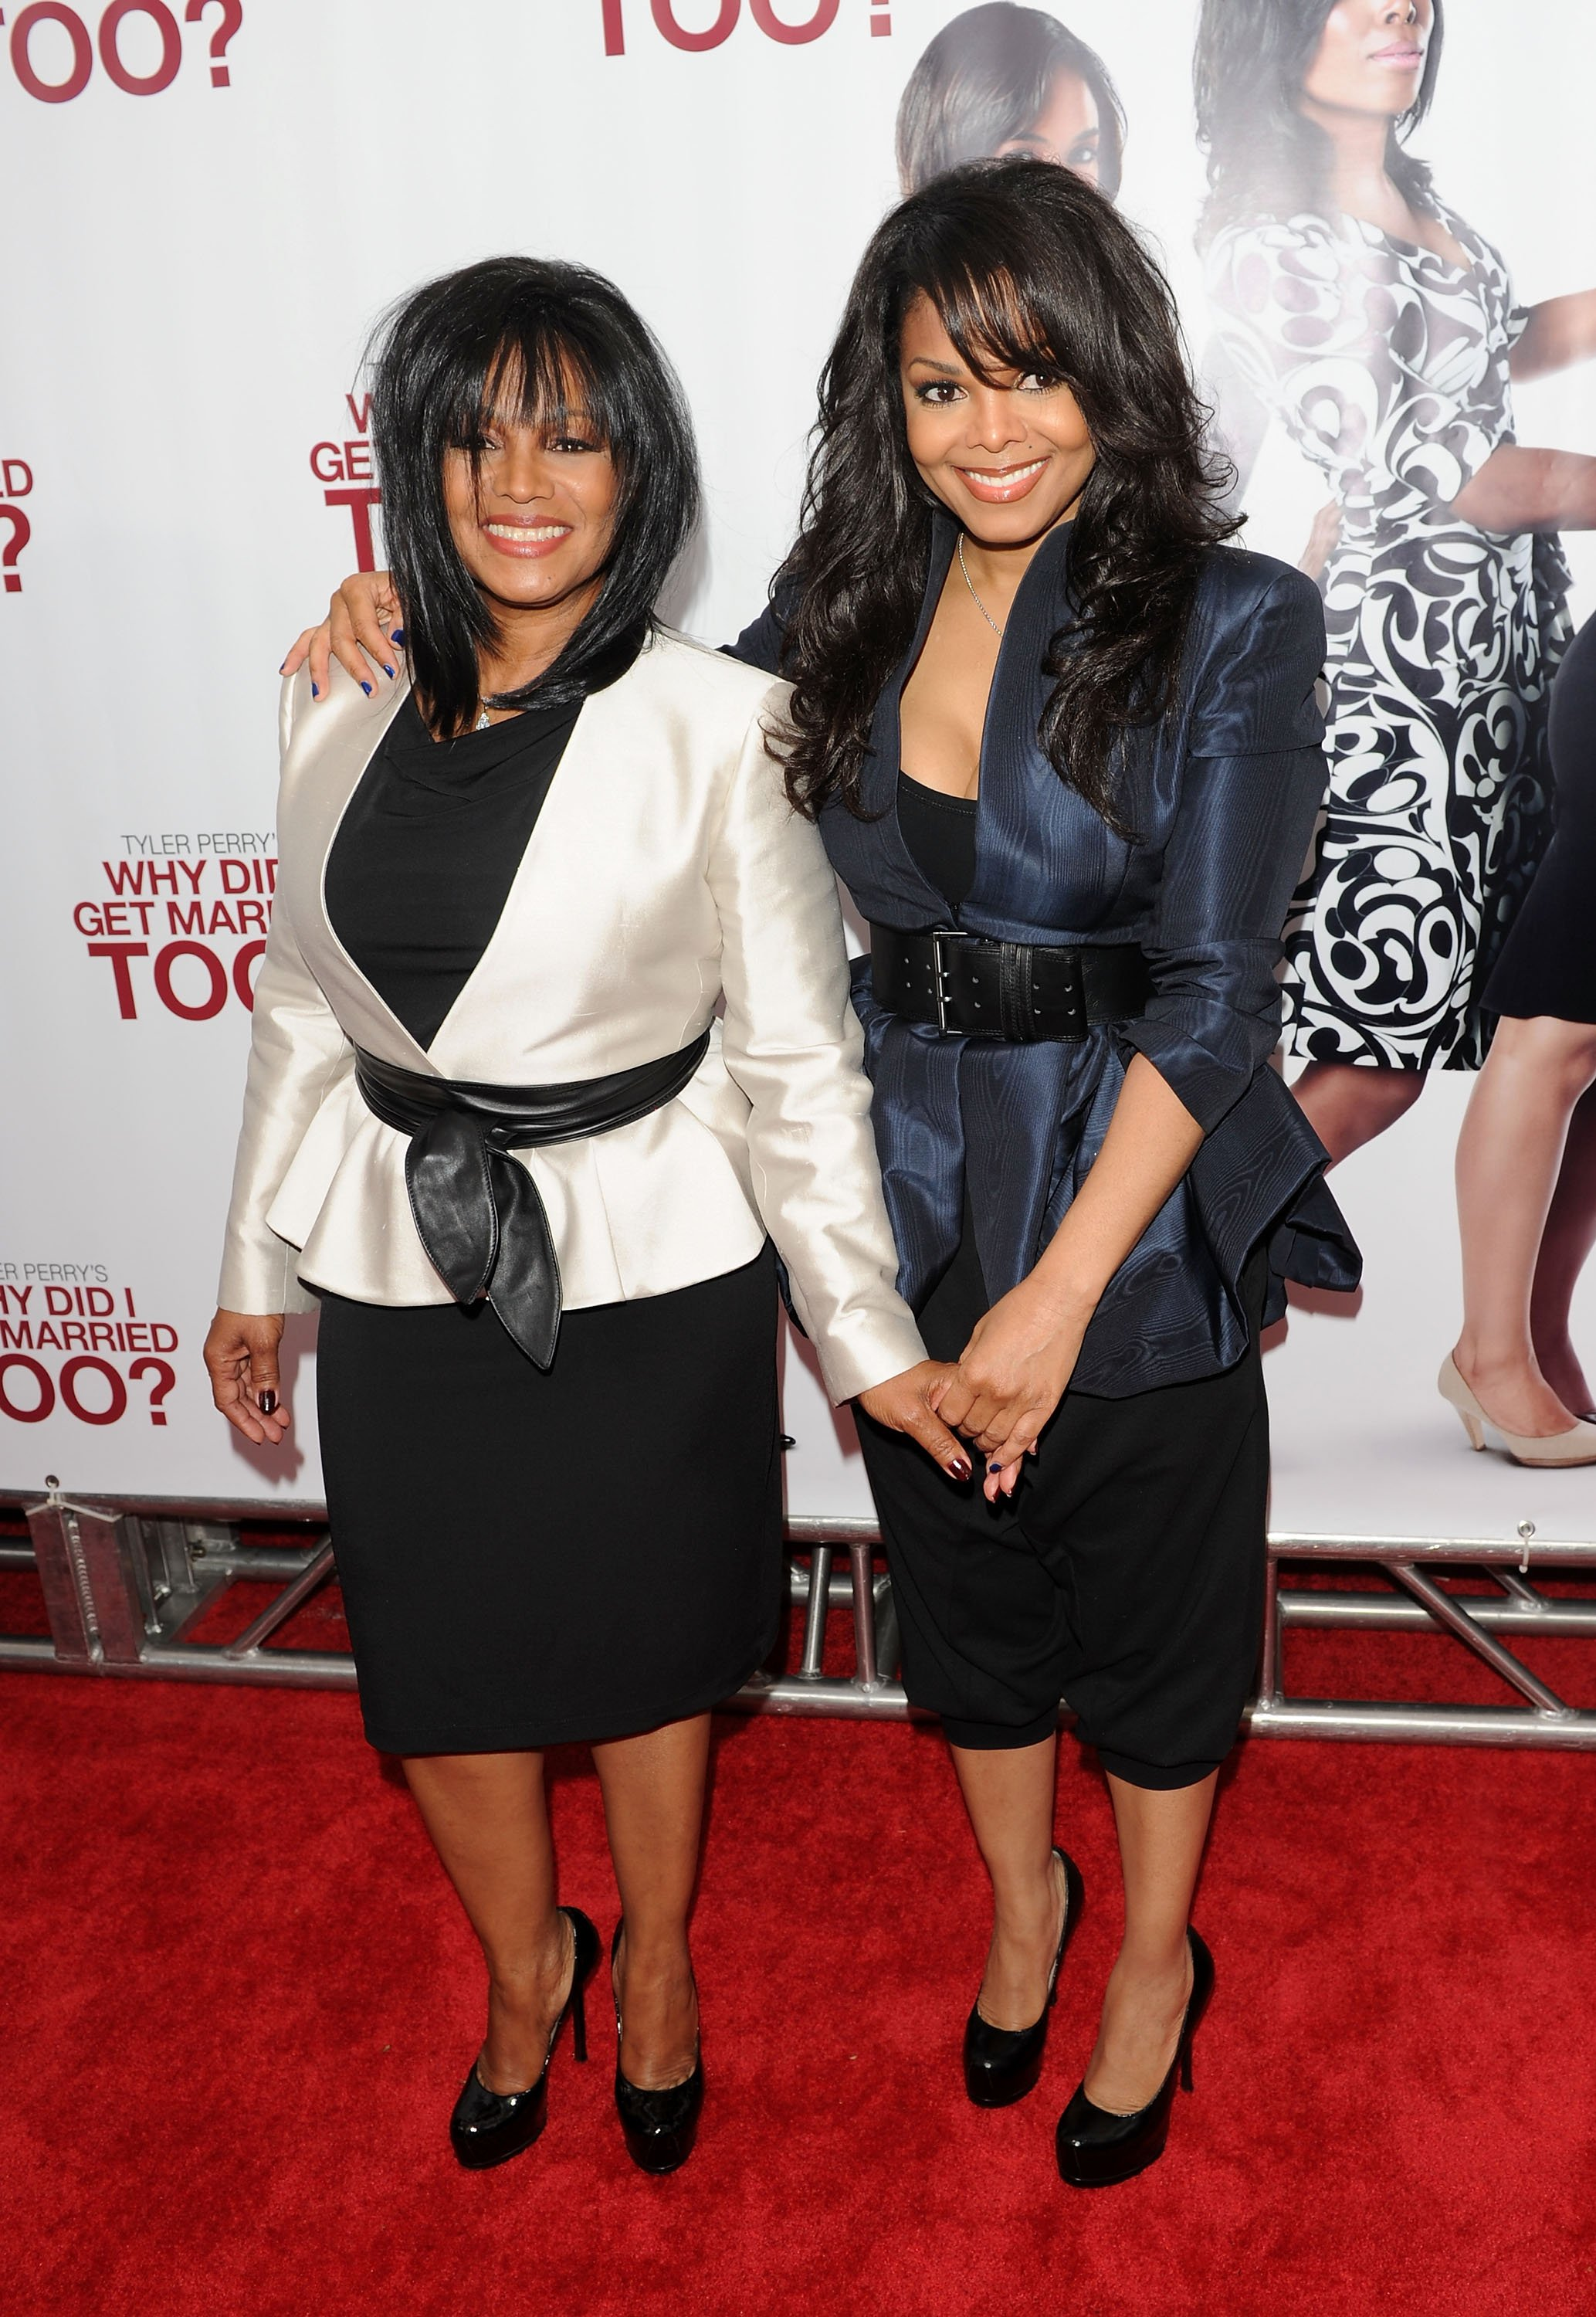 """Rebbie Jackson and Janet Jackson attending the special screening of """"Why Did I Get Married Too?"""" in New York in March 2010. 